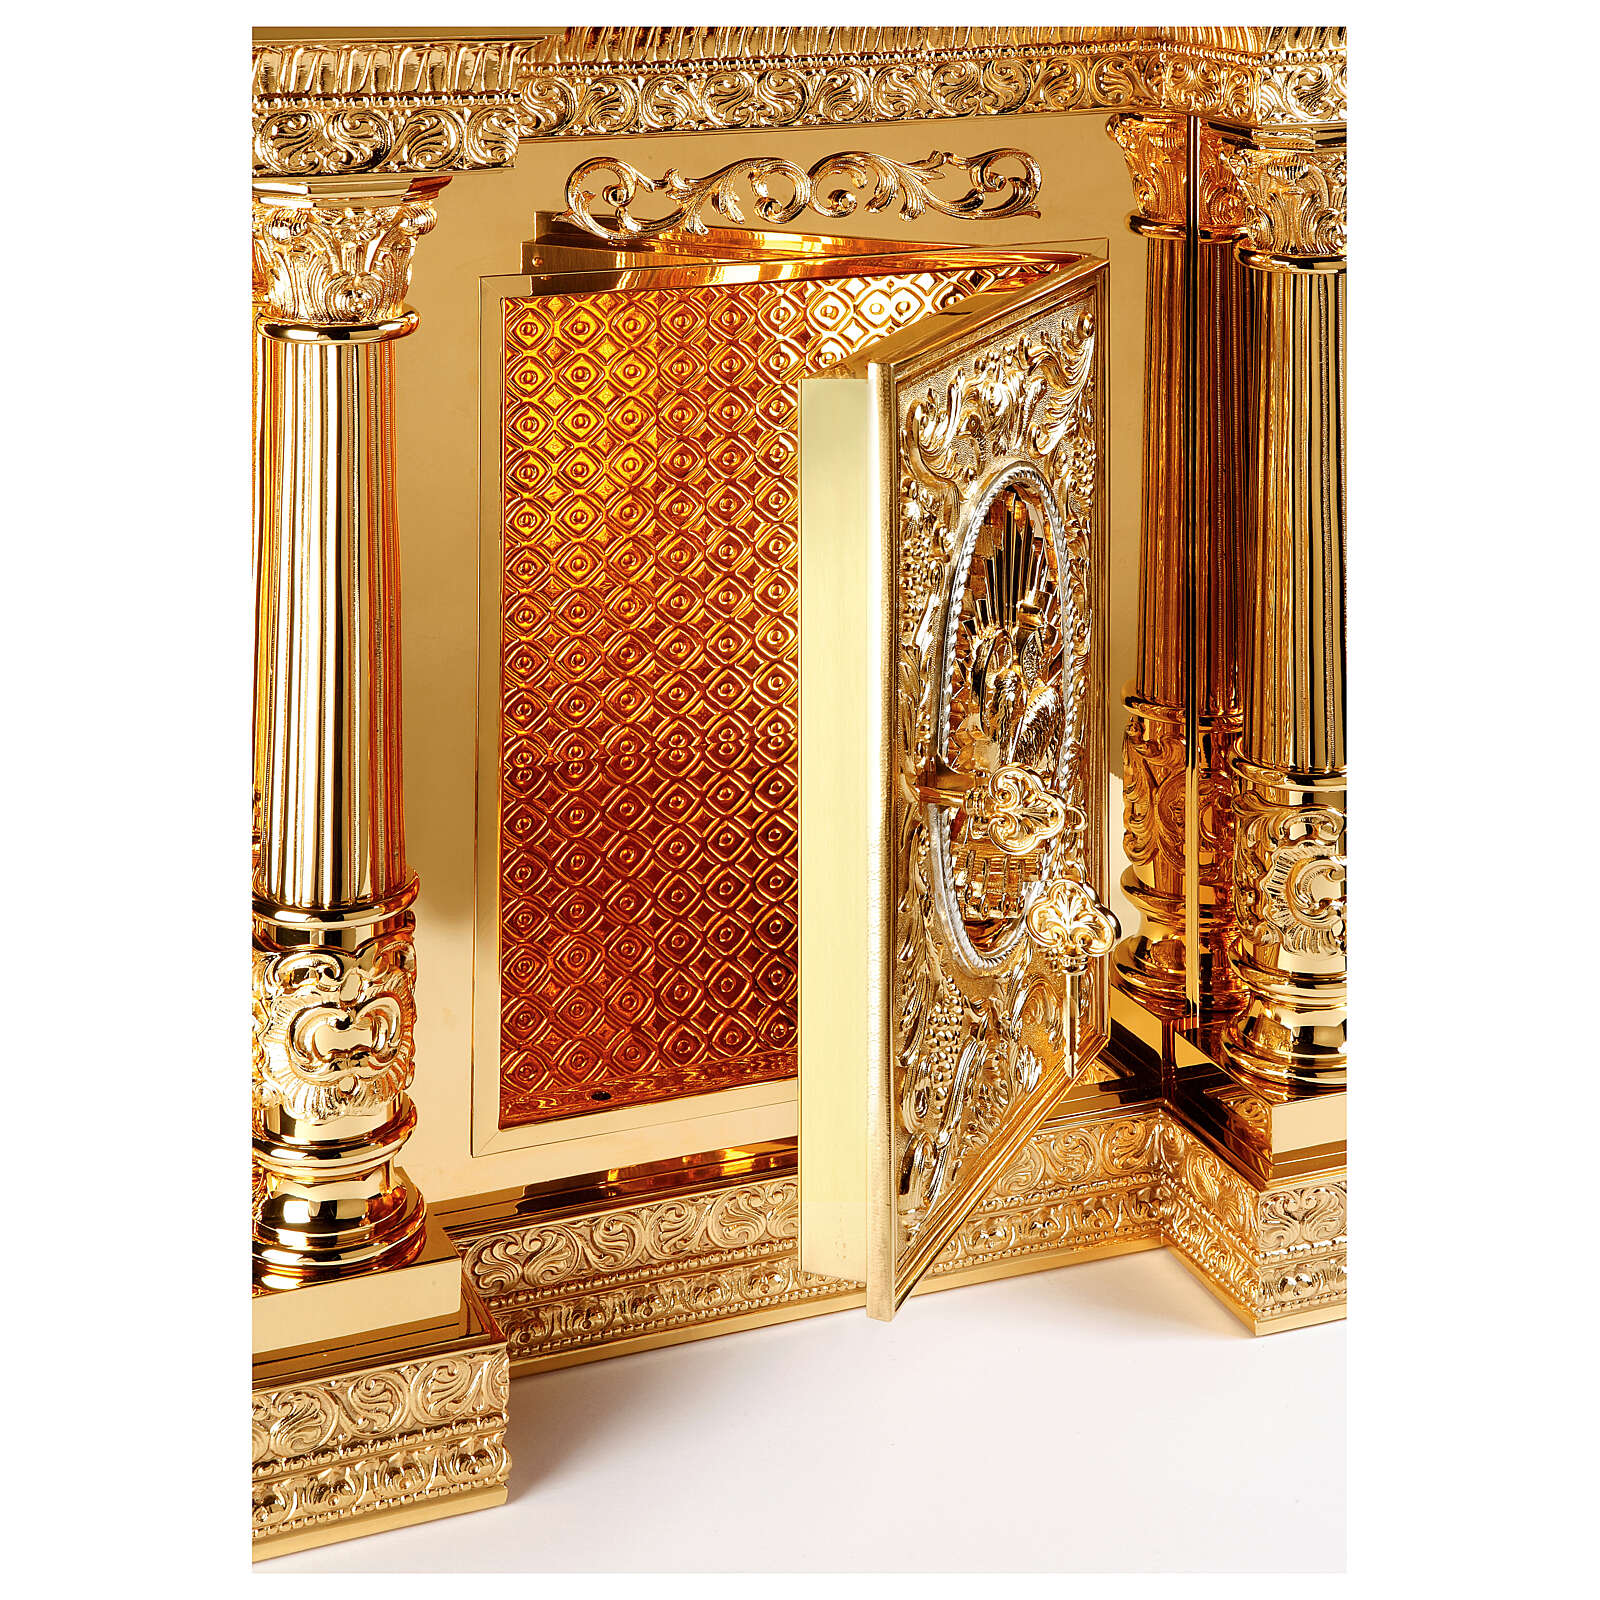 Baroque Molina tabernacle Four Evangelists gold plated brass 50x30x25 in 4